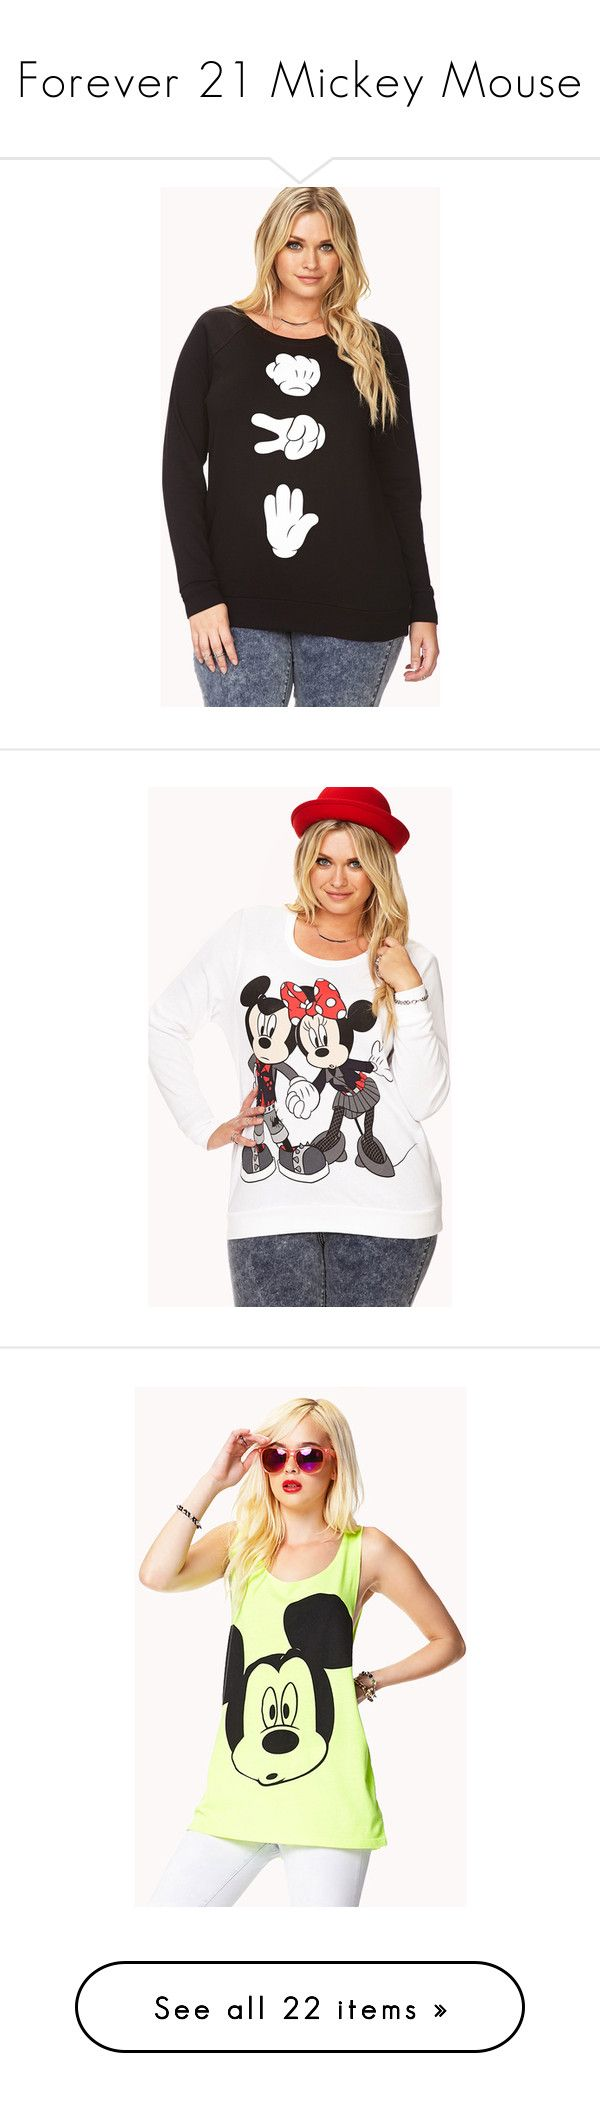 """Forever 21 Mickey Mouse"" by luni-salazar ❤ liked on Polyvore featuring plus size women's fashion, plus size clothing, plus size tops, plus size hoodies, plus size sweatshirts, plus size, graphic tops, plus size womens sweatshirts, long tops and forever 21 sweatshirt"